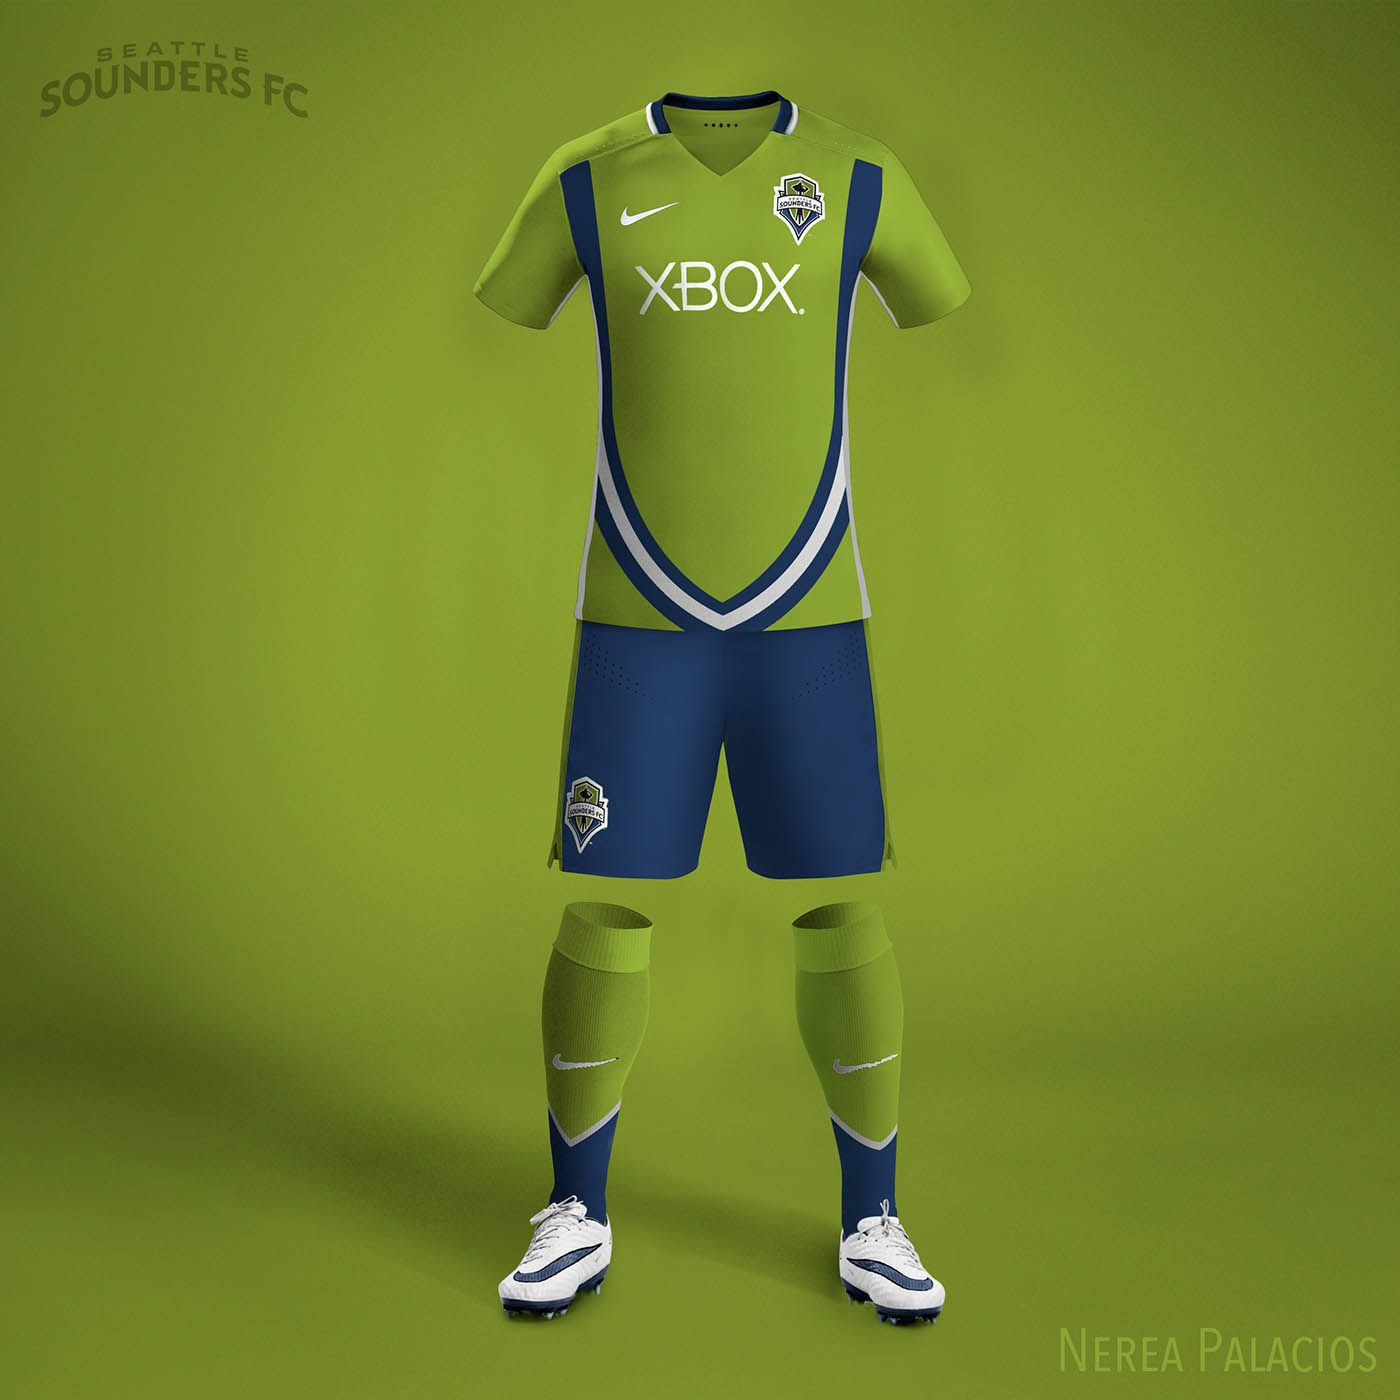 Nike mexico jersey 2017 one pen one page - Nike Mls Concept Kits By Nerea Palacios Seattle Sounders Fc